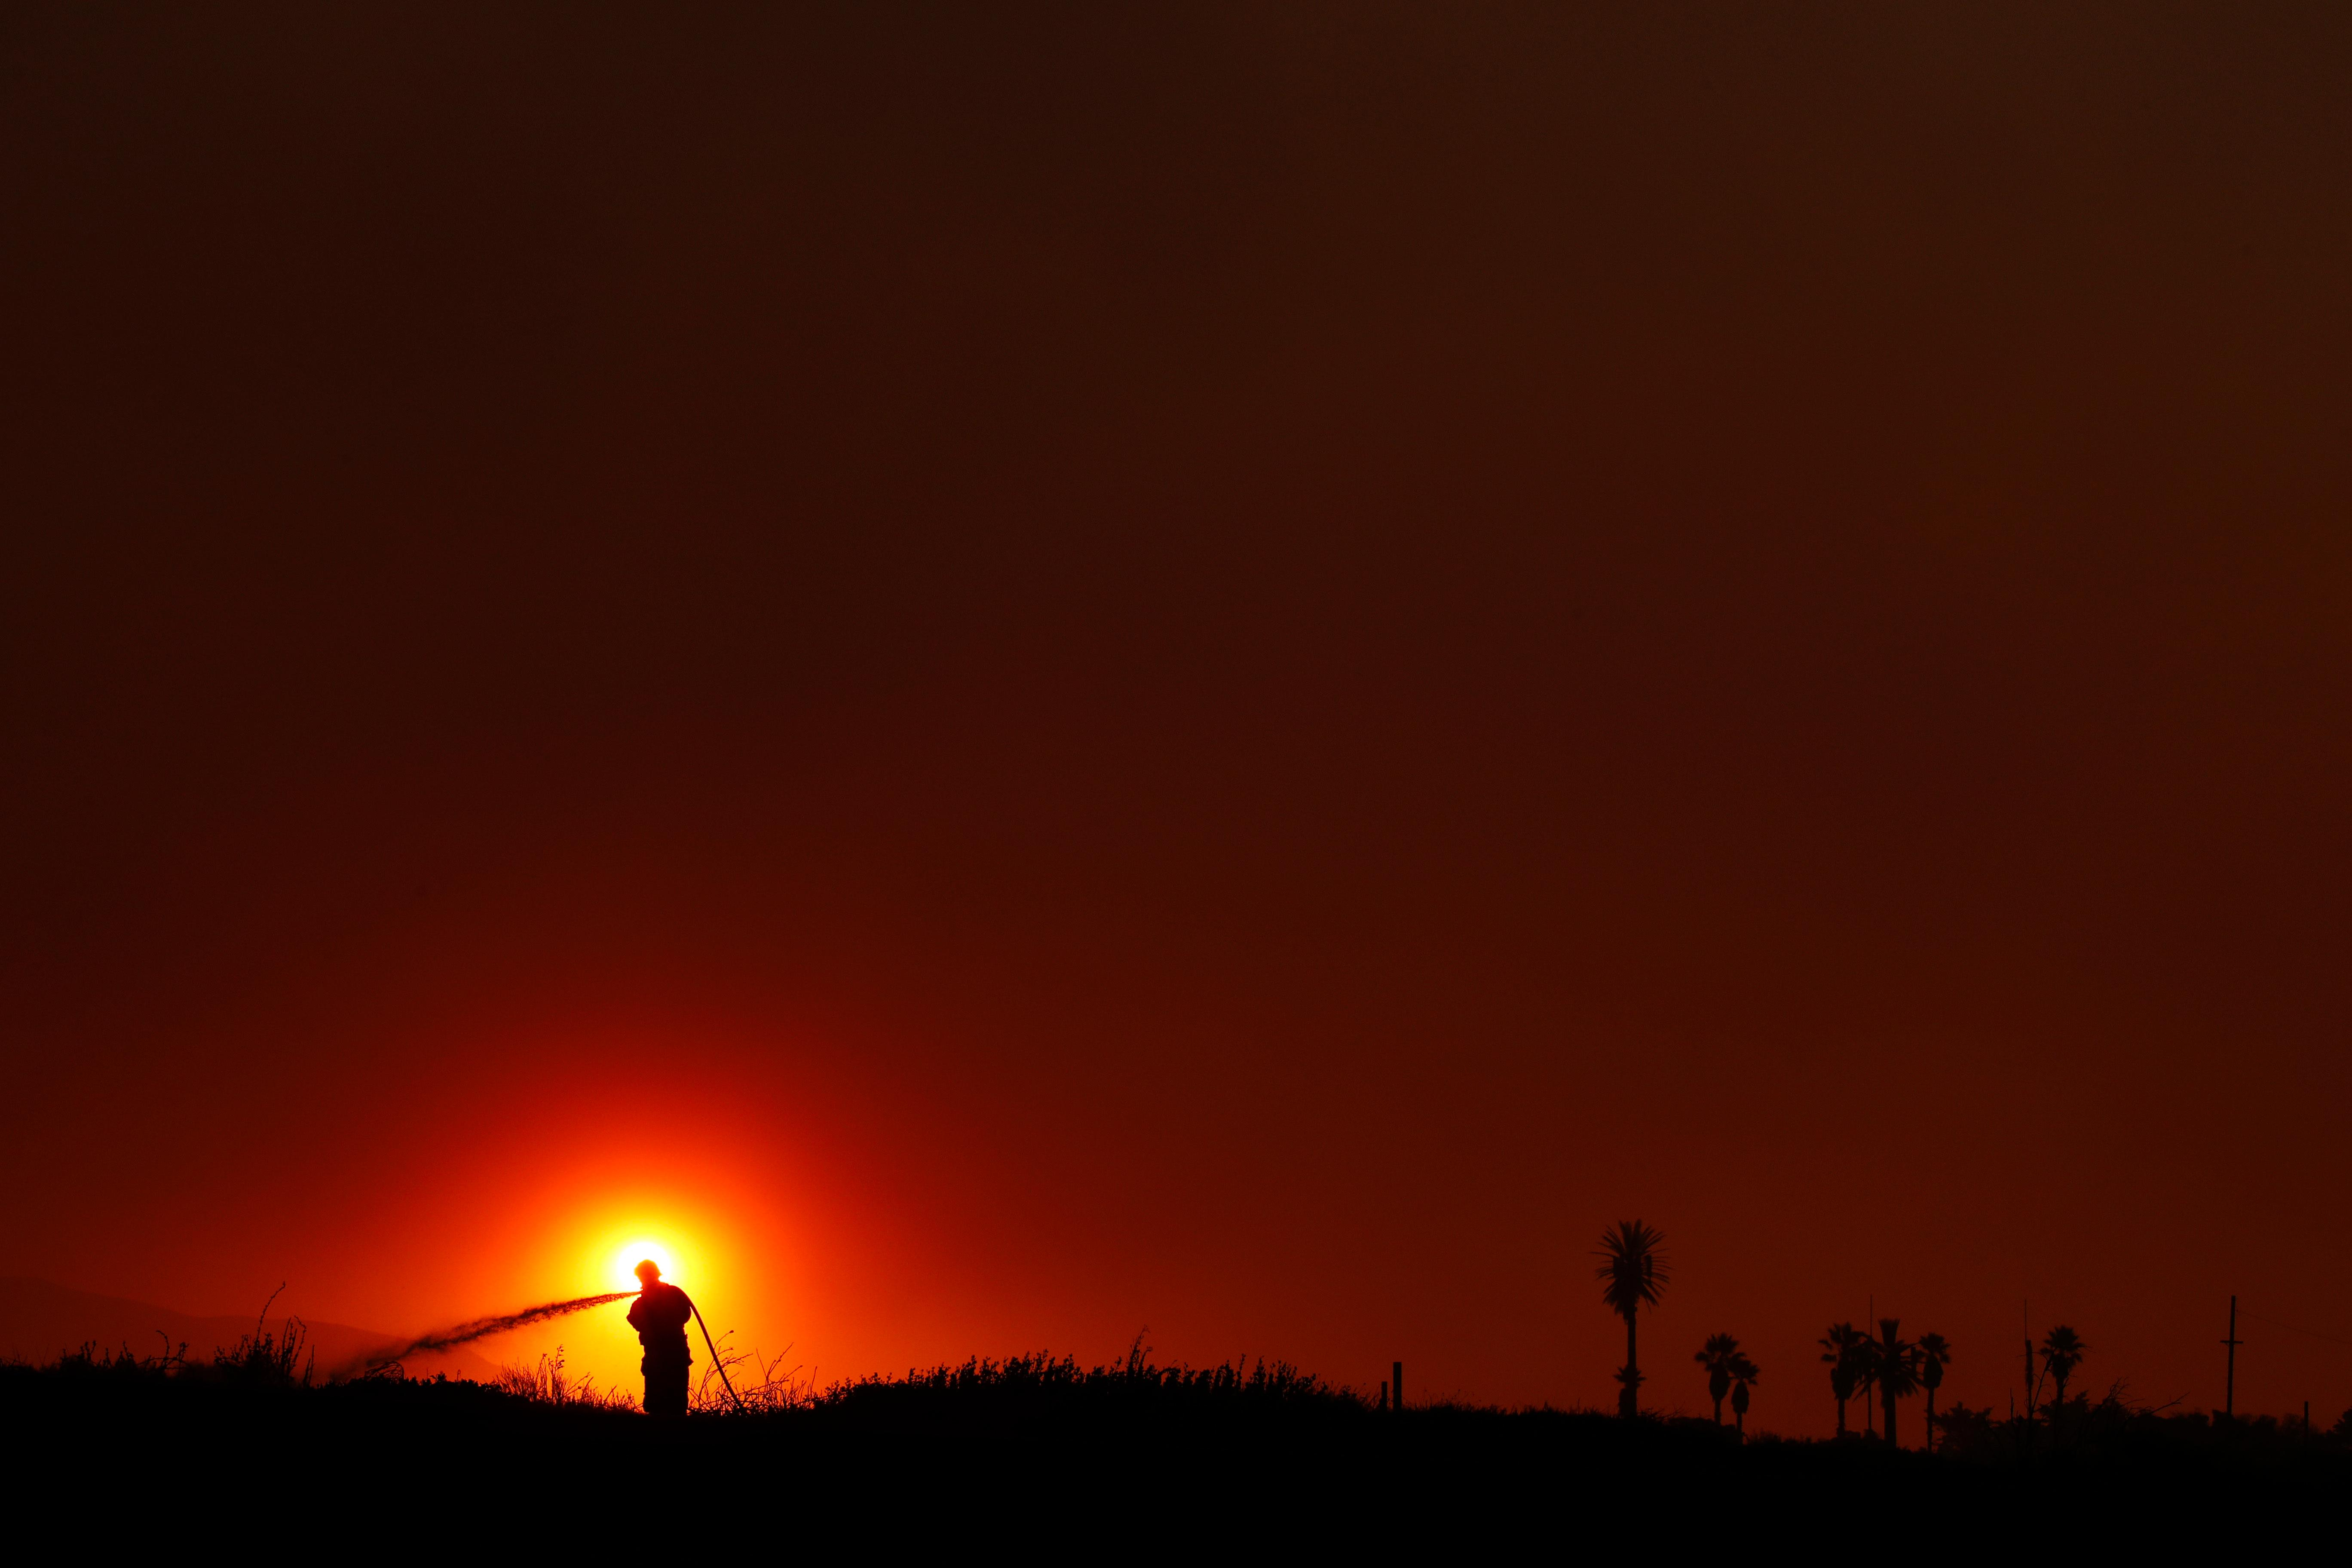 Firefighter Dan Whelan is silhouetted against the sun as he battles a wildfire burning near Faria State Beach in Ventura, Calif., Thursday, Dec. 7, 2017. The wind-swept blazes have forced tens of thousands of evacuations and destroyed dozens of homes. (AP Photo/Jae C. Hong)